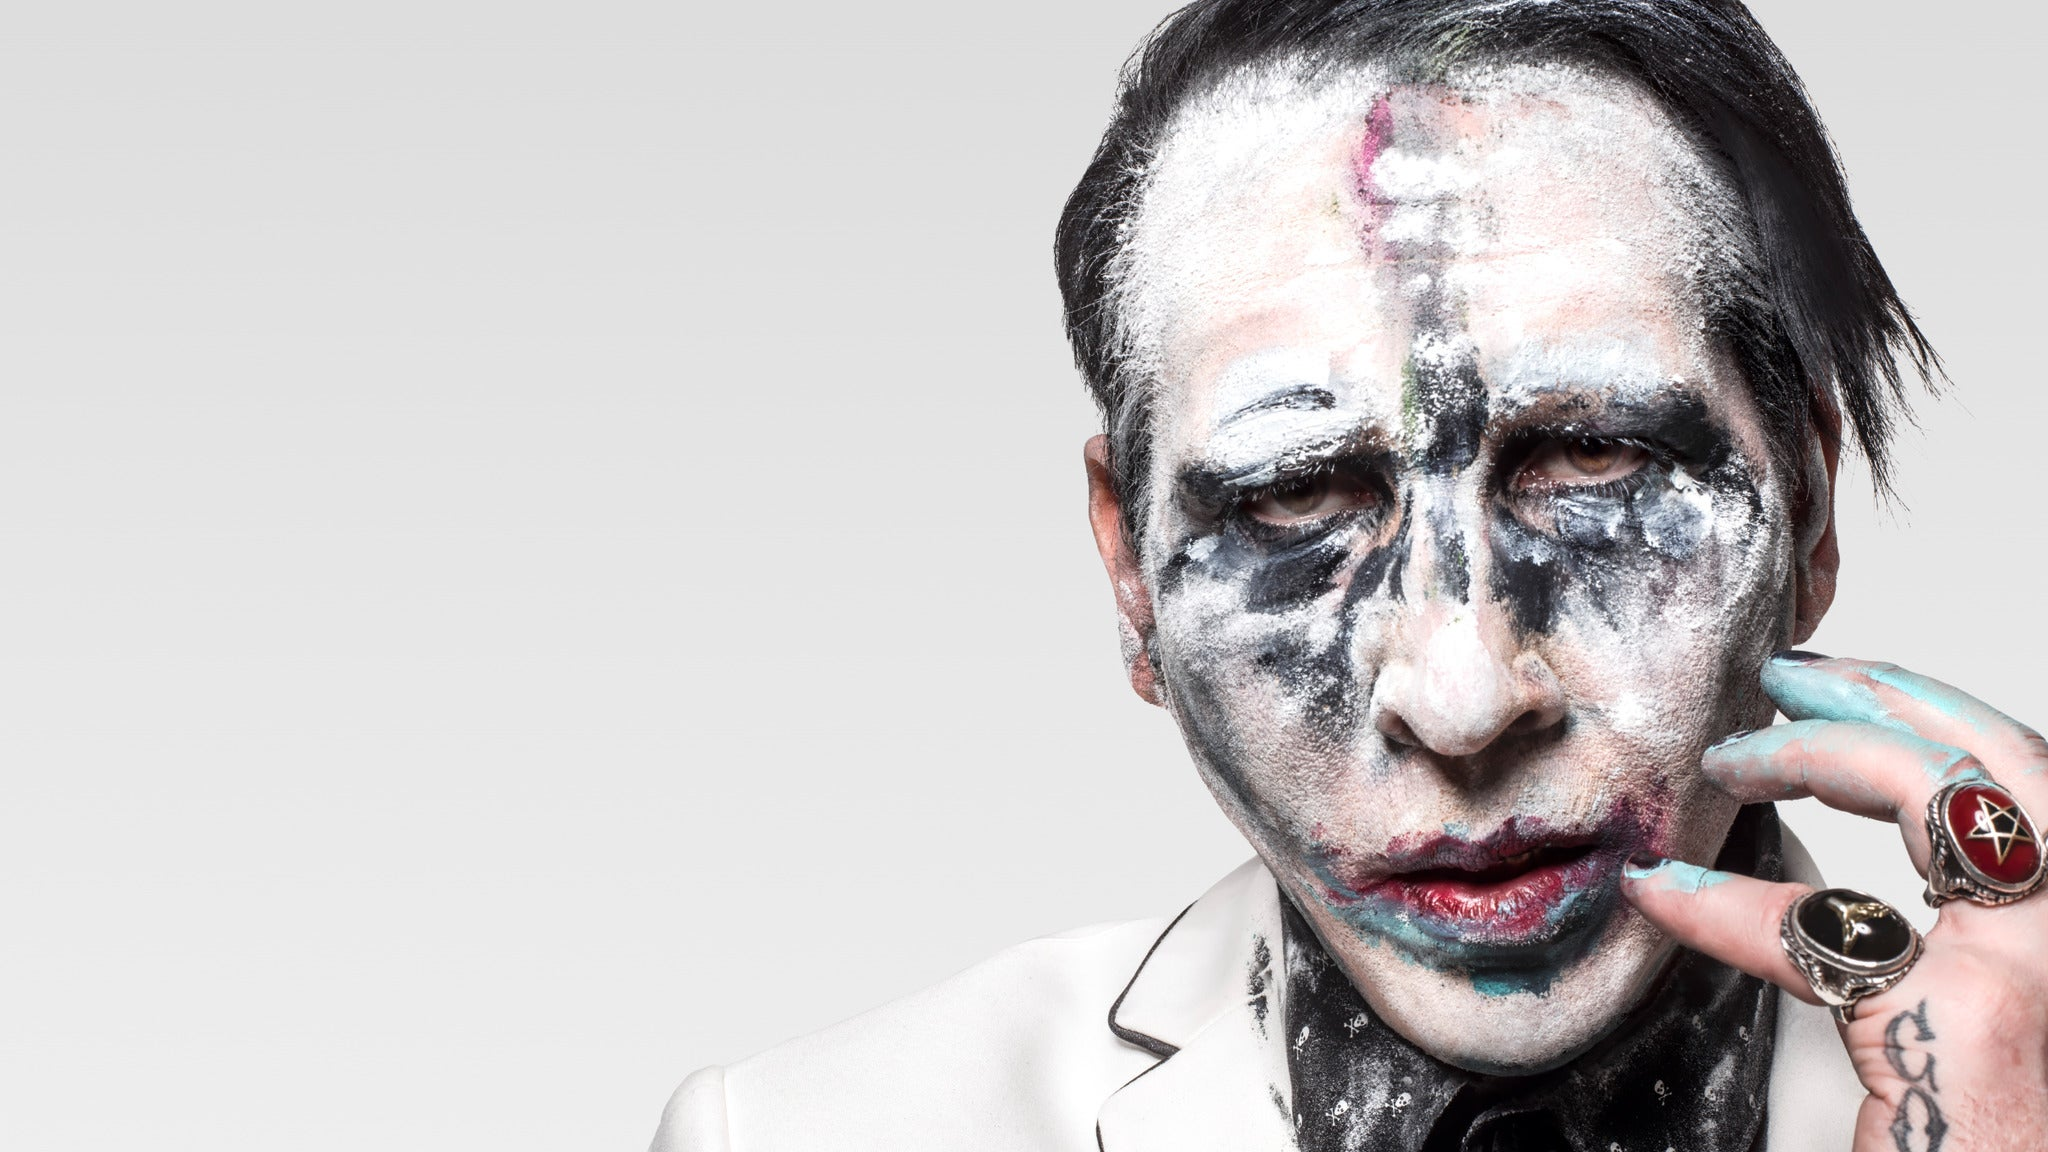 [Sold Out!] Marilyn Manson